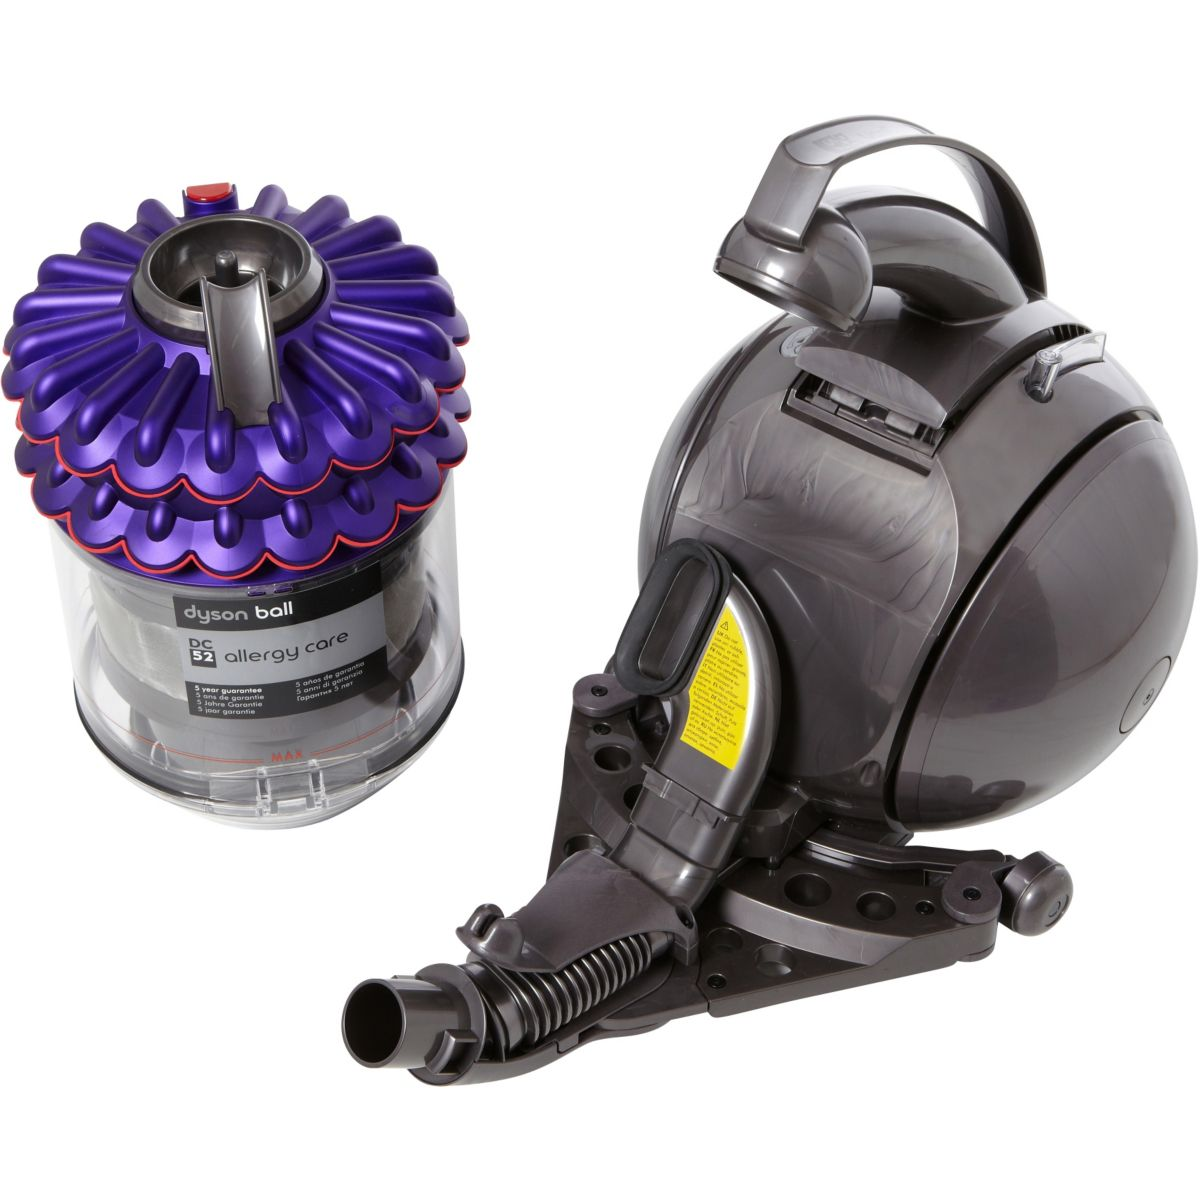 dyson dc52 allergy care aspirateur tra neau sans sac. Black Bedroom Furniture Sets. Home Design Ideas